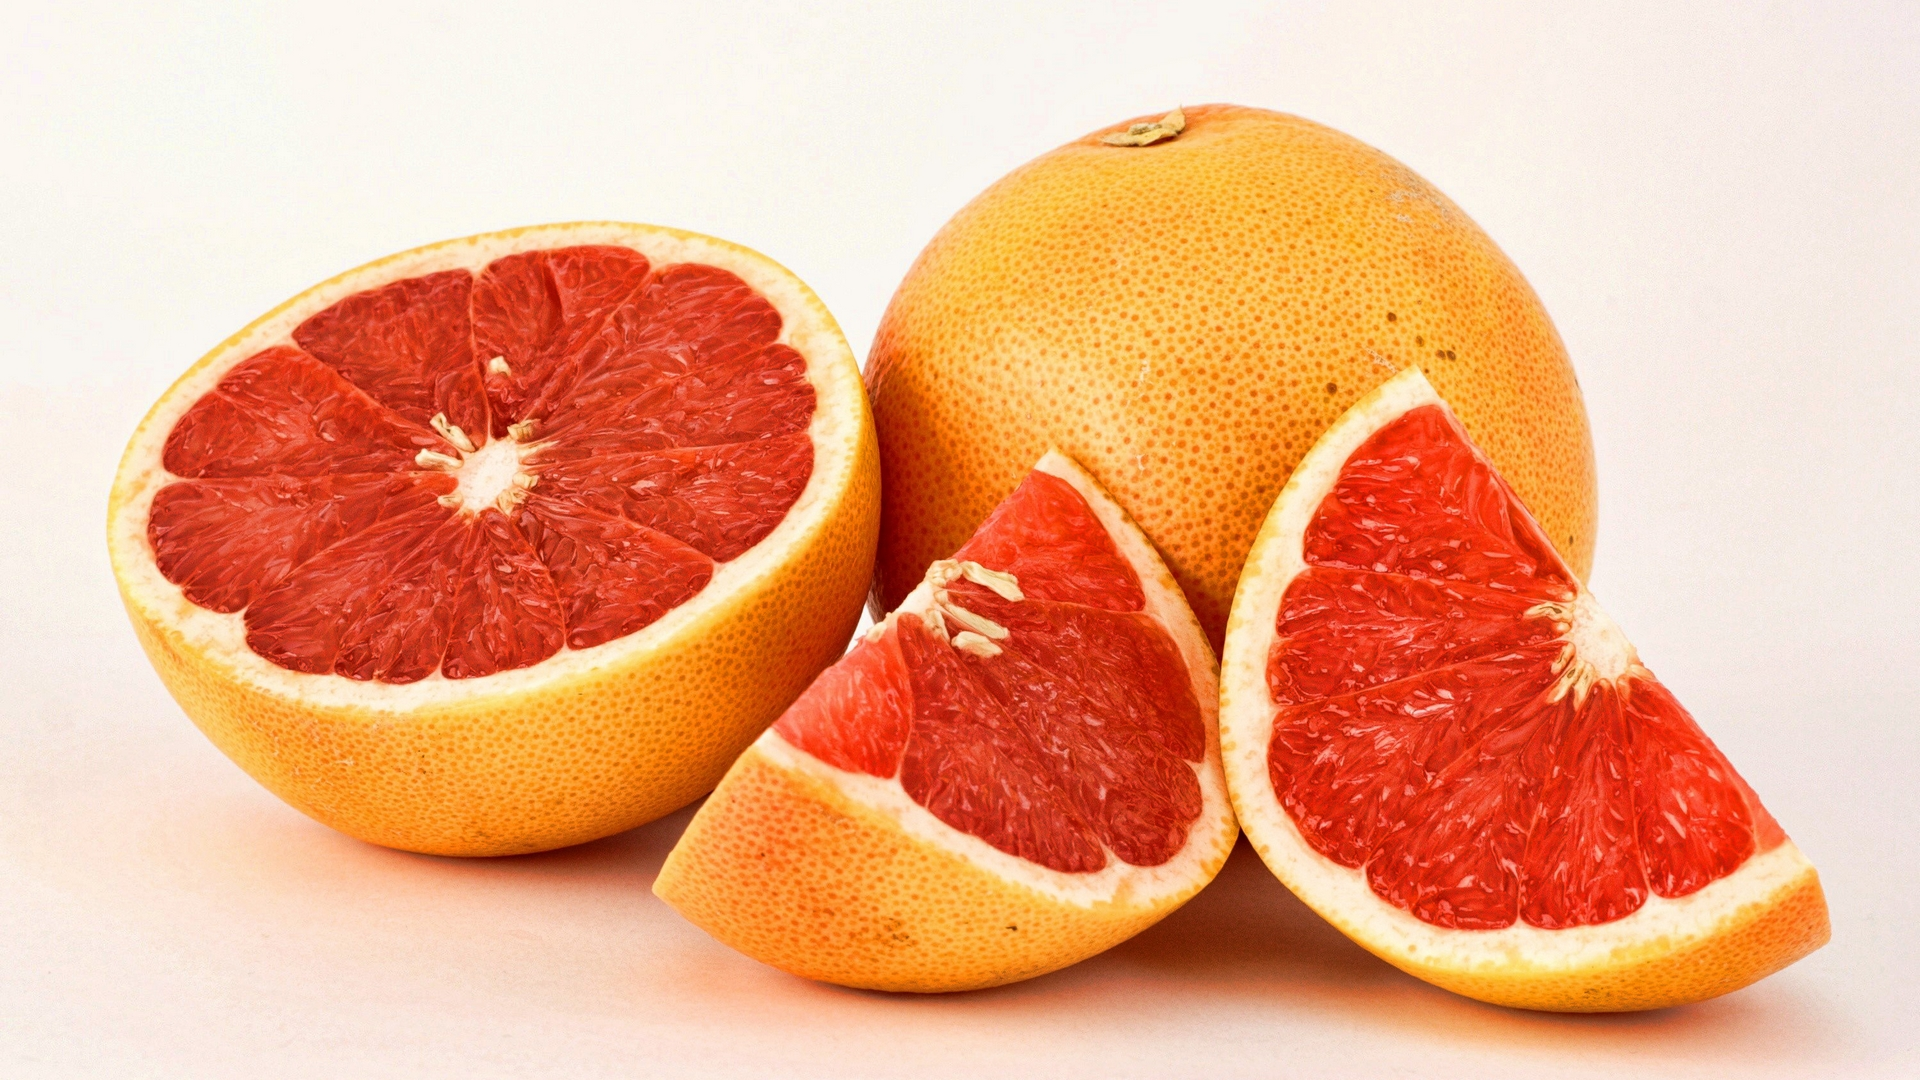 red orange fruits for winter